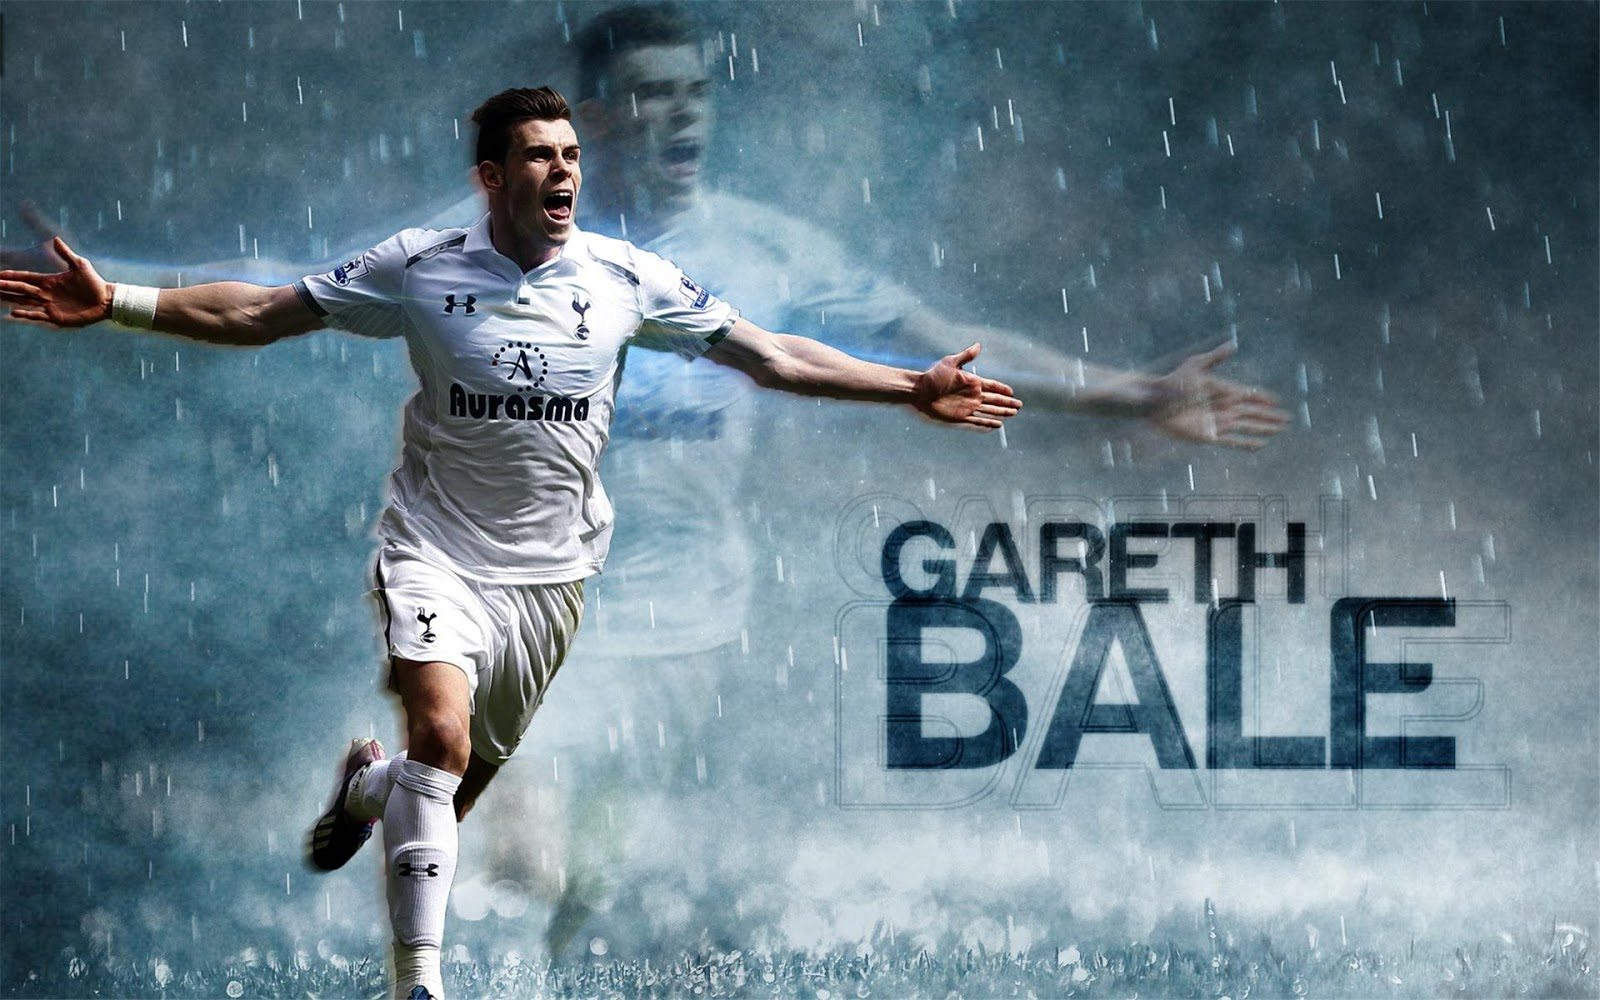 Batista Hd Wallpapers 2014 Gareth Bale Fresh Hd Wallpapers 2013 All About Hd Wallpapers